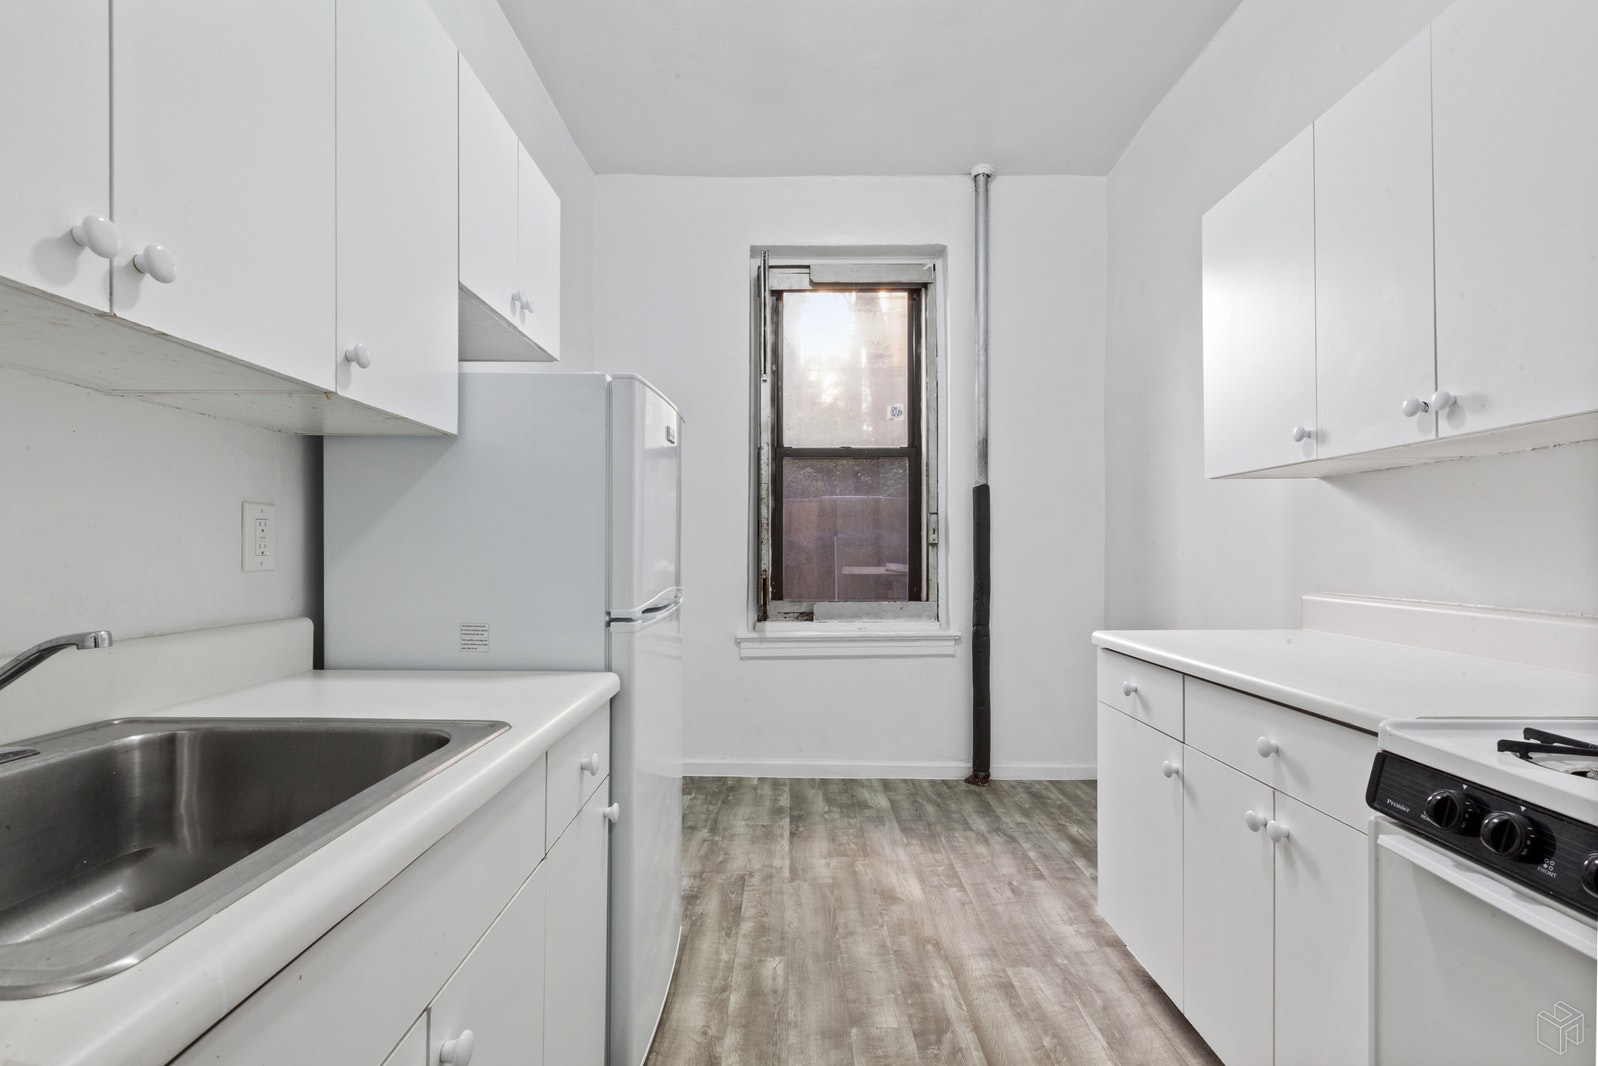 359 West 126th Street 1b, Upper Manhattan, NYC, 10027, Price Not Disclosed, Rented Property, Halstead Real Estate, Photo 3